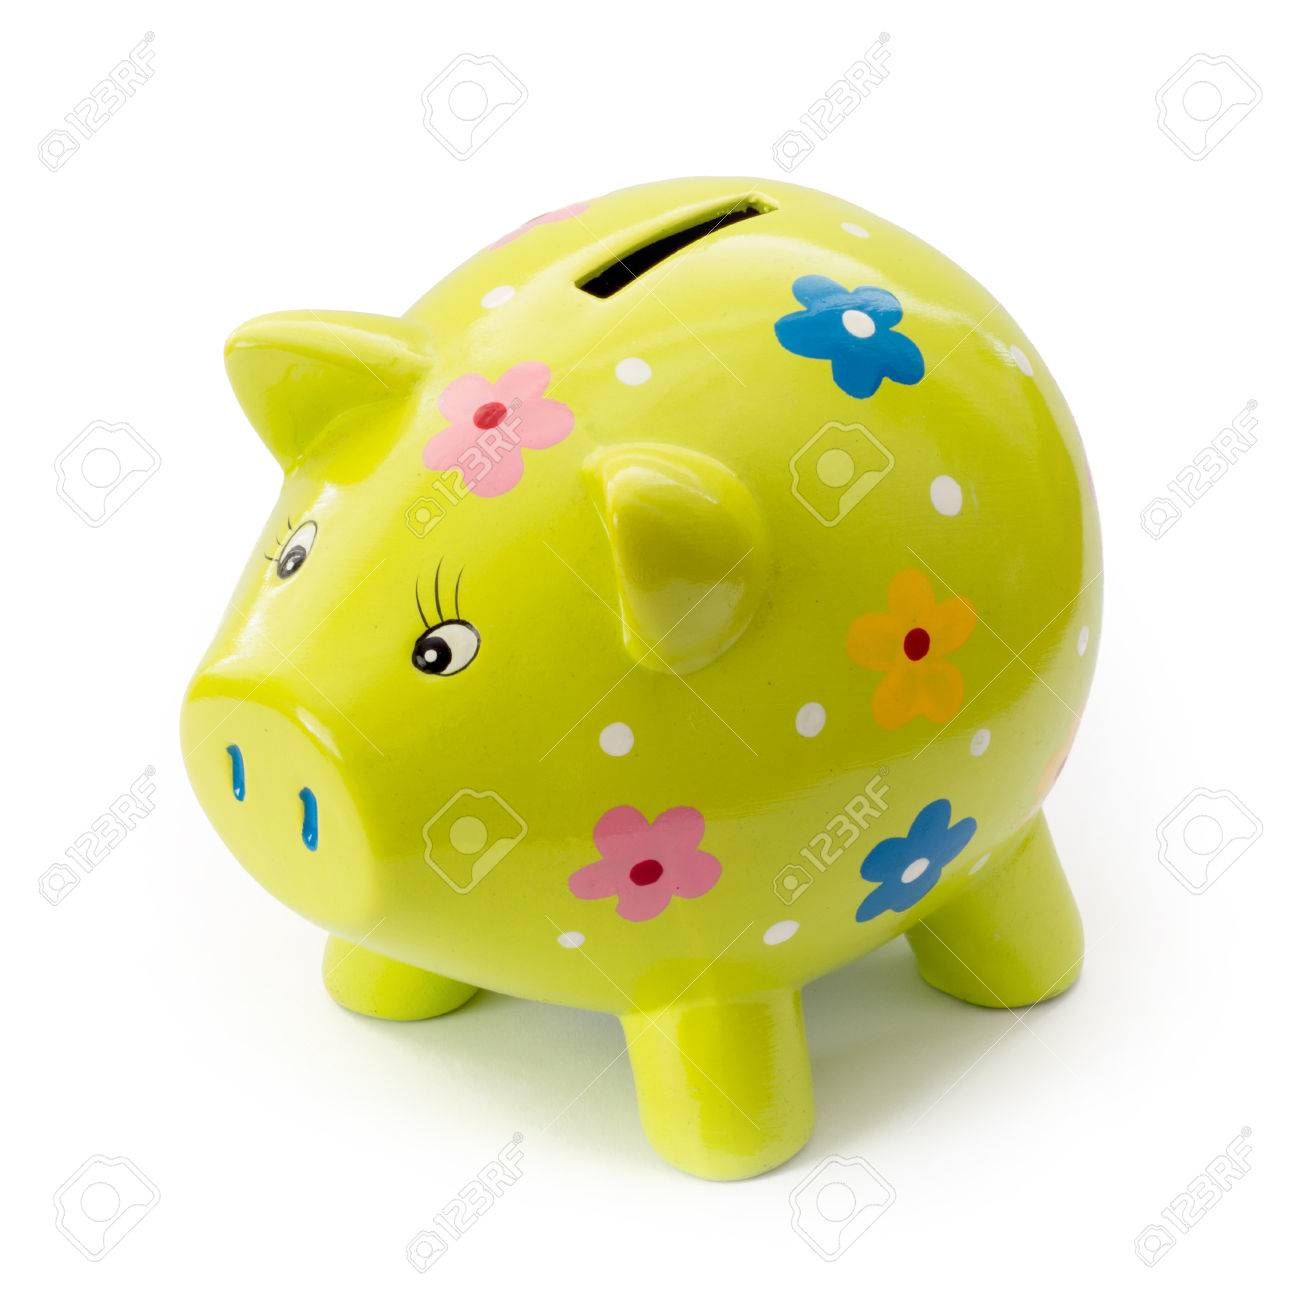 Painted ceramic piggy bank on a white background. - 26018753